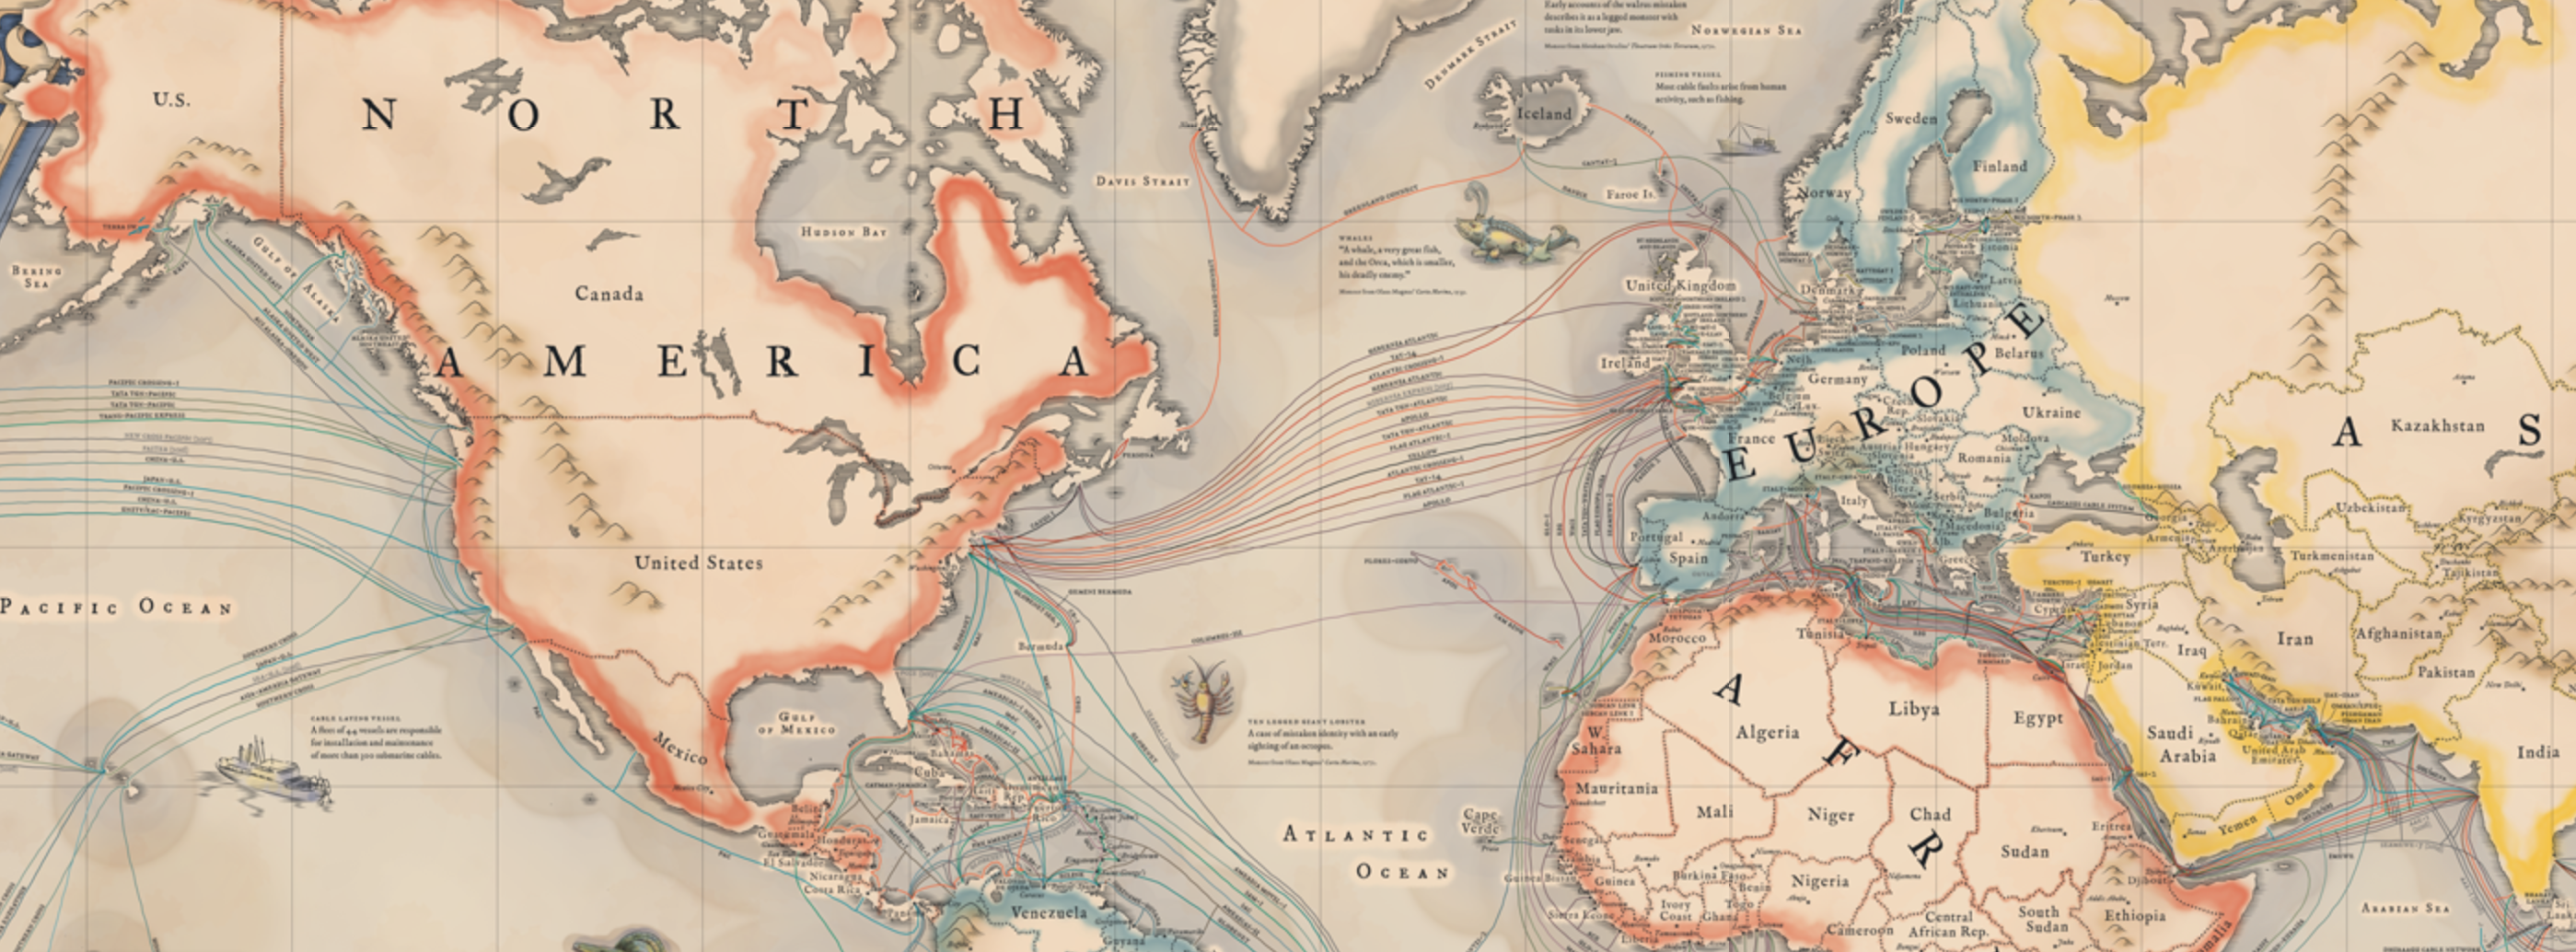 Around the world in submarine internet cable musings on maps transatlantic gumiabroncs